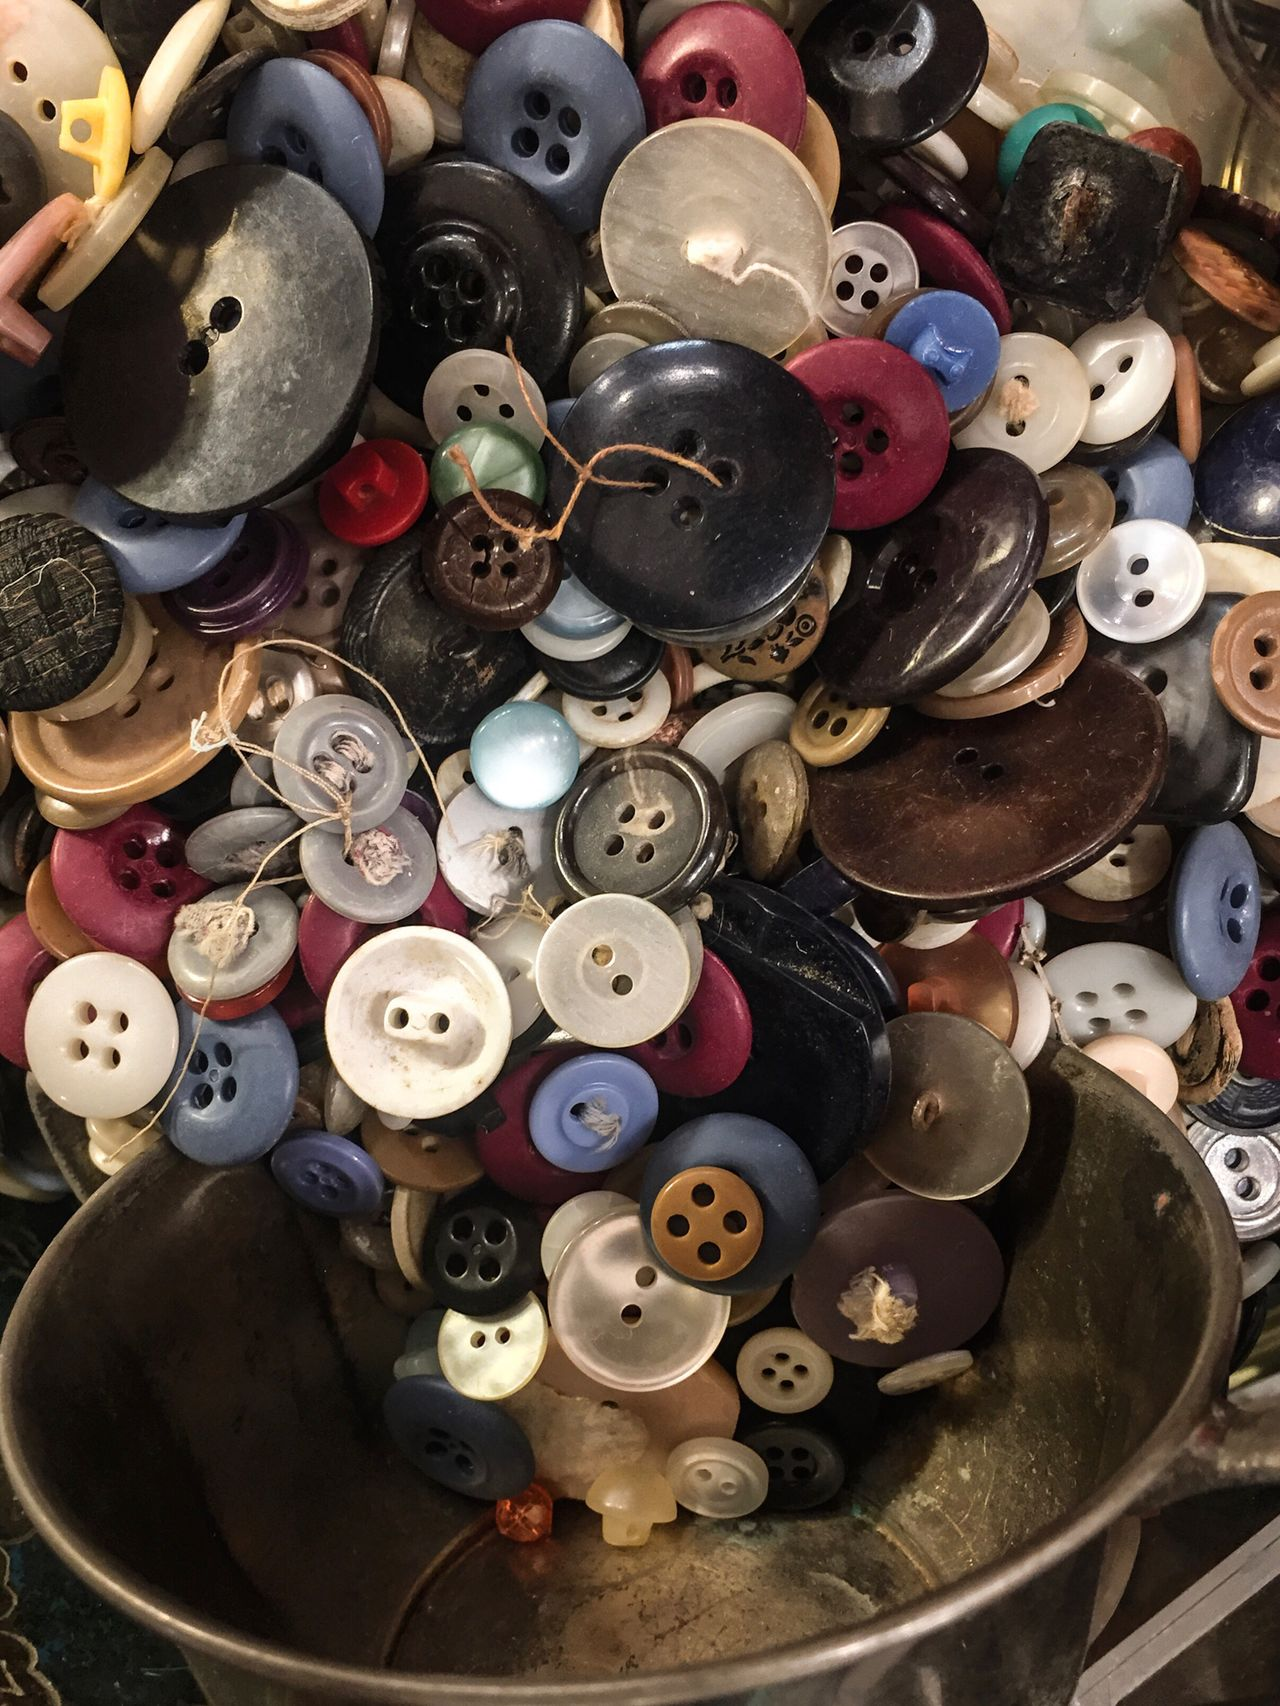 Large Group Of Objects Abundance Variation Sewing High Angle View No People Choice Sewing Item Indoors  Multi Colored Close-up Day Buttons Brasscup Plastic